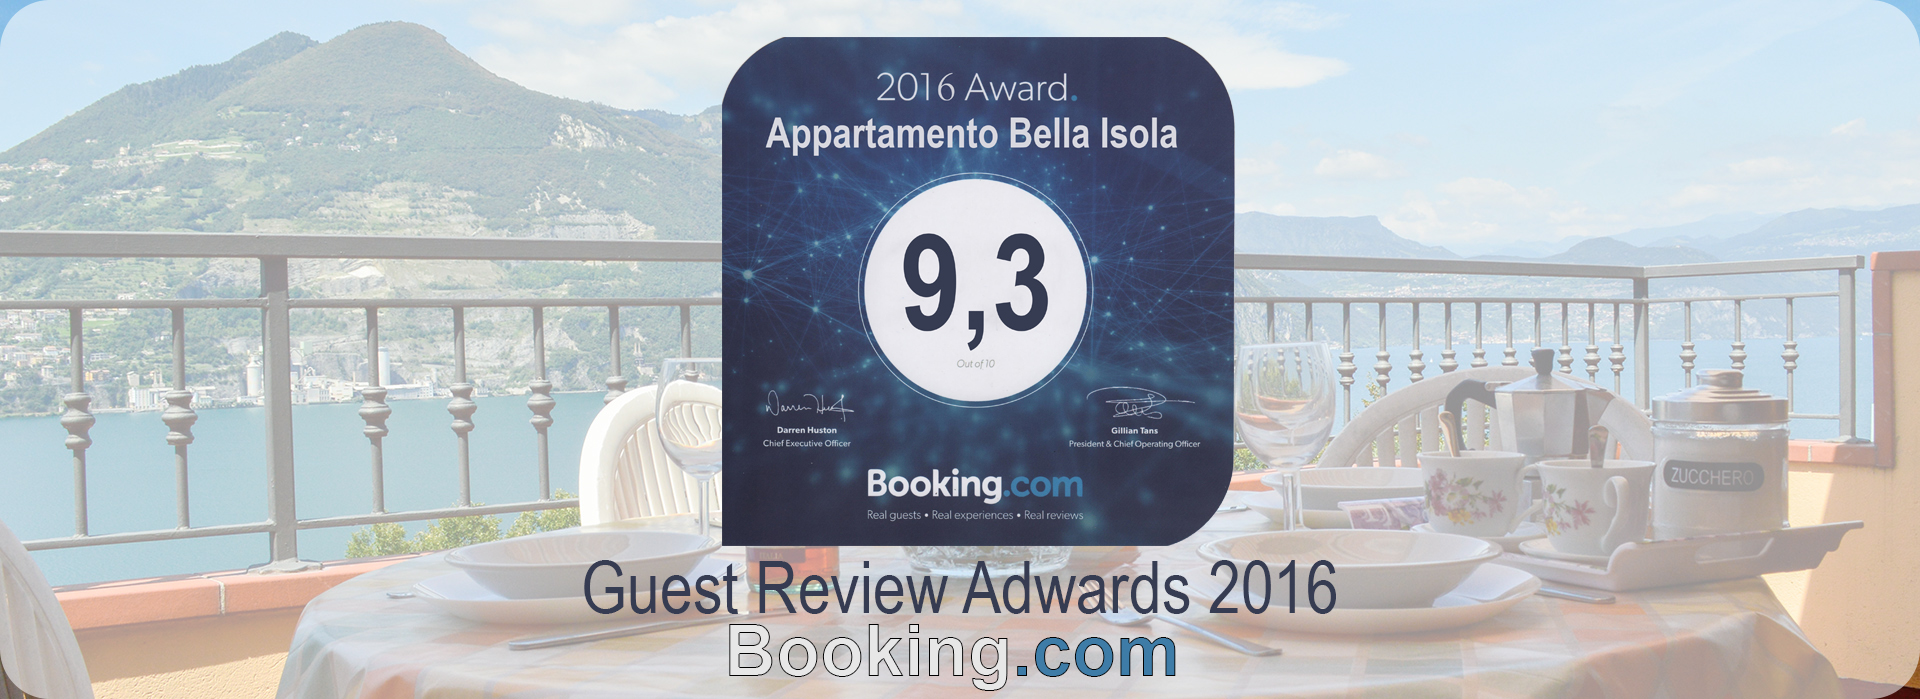 Home-Booking-Adward-2016